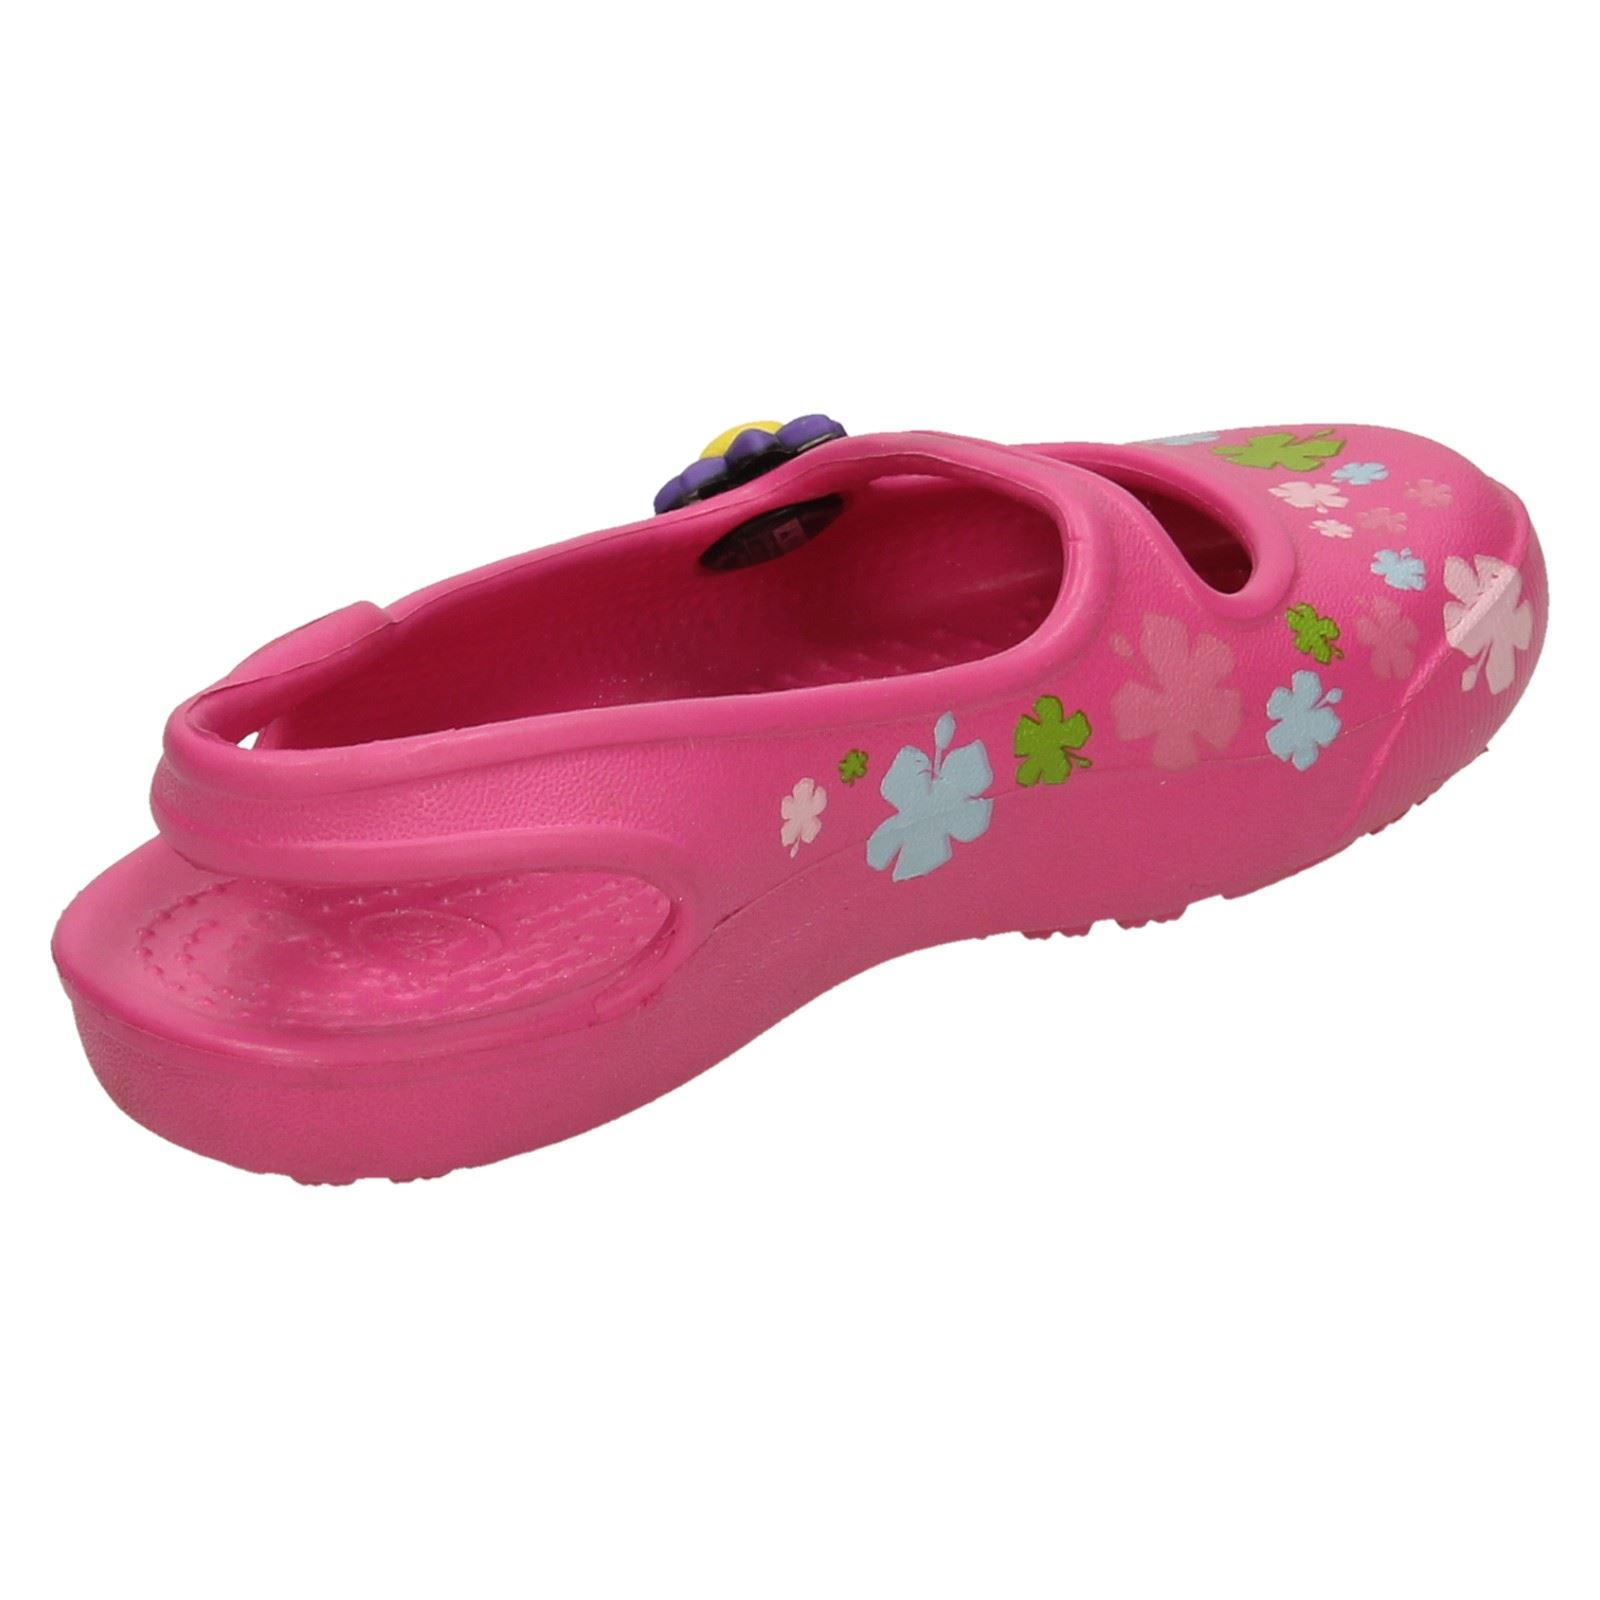 359b323f4 Girls-Crocs-Gabby-Flowers-Slip-On-Sandals thumbnail 7